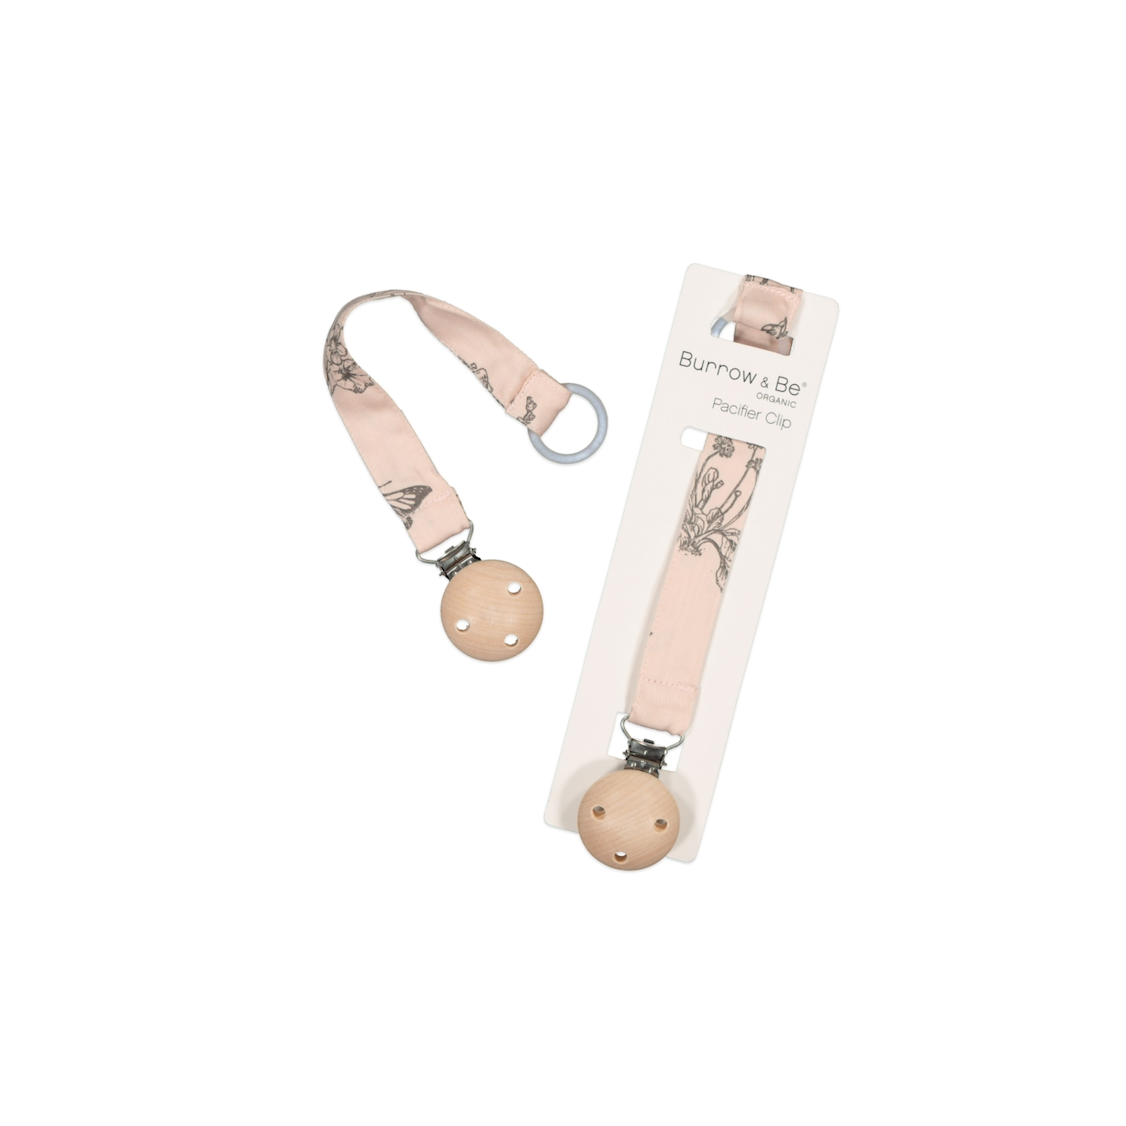 Burrow & Be Pacifier Clip in Blush Meadow